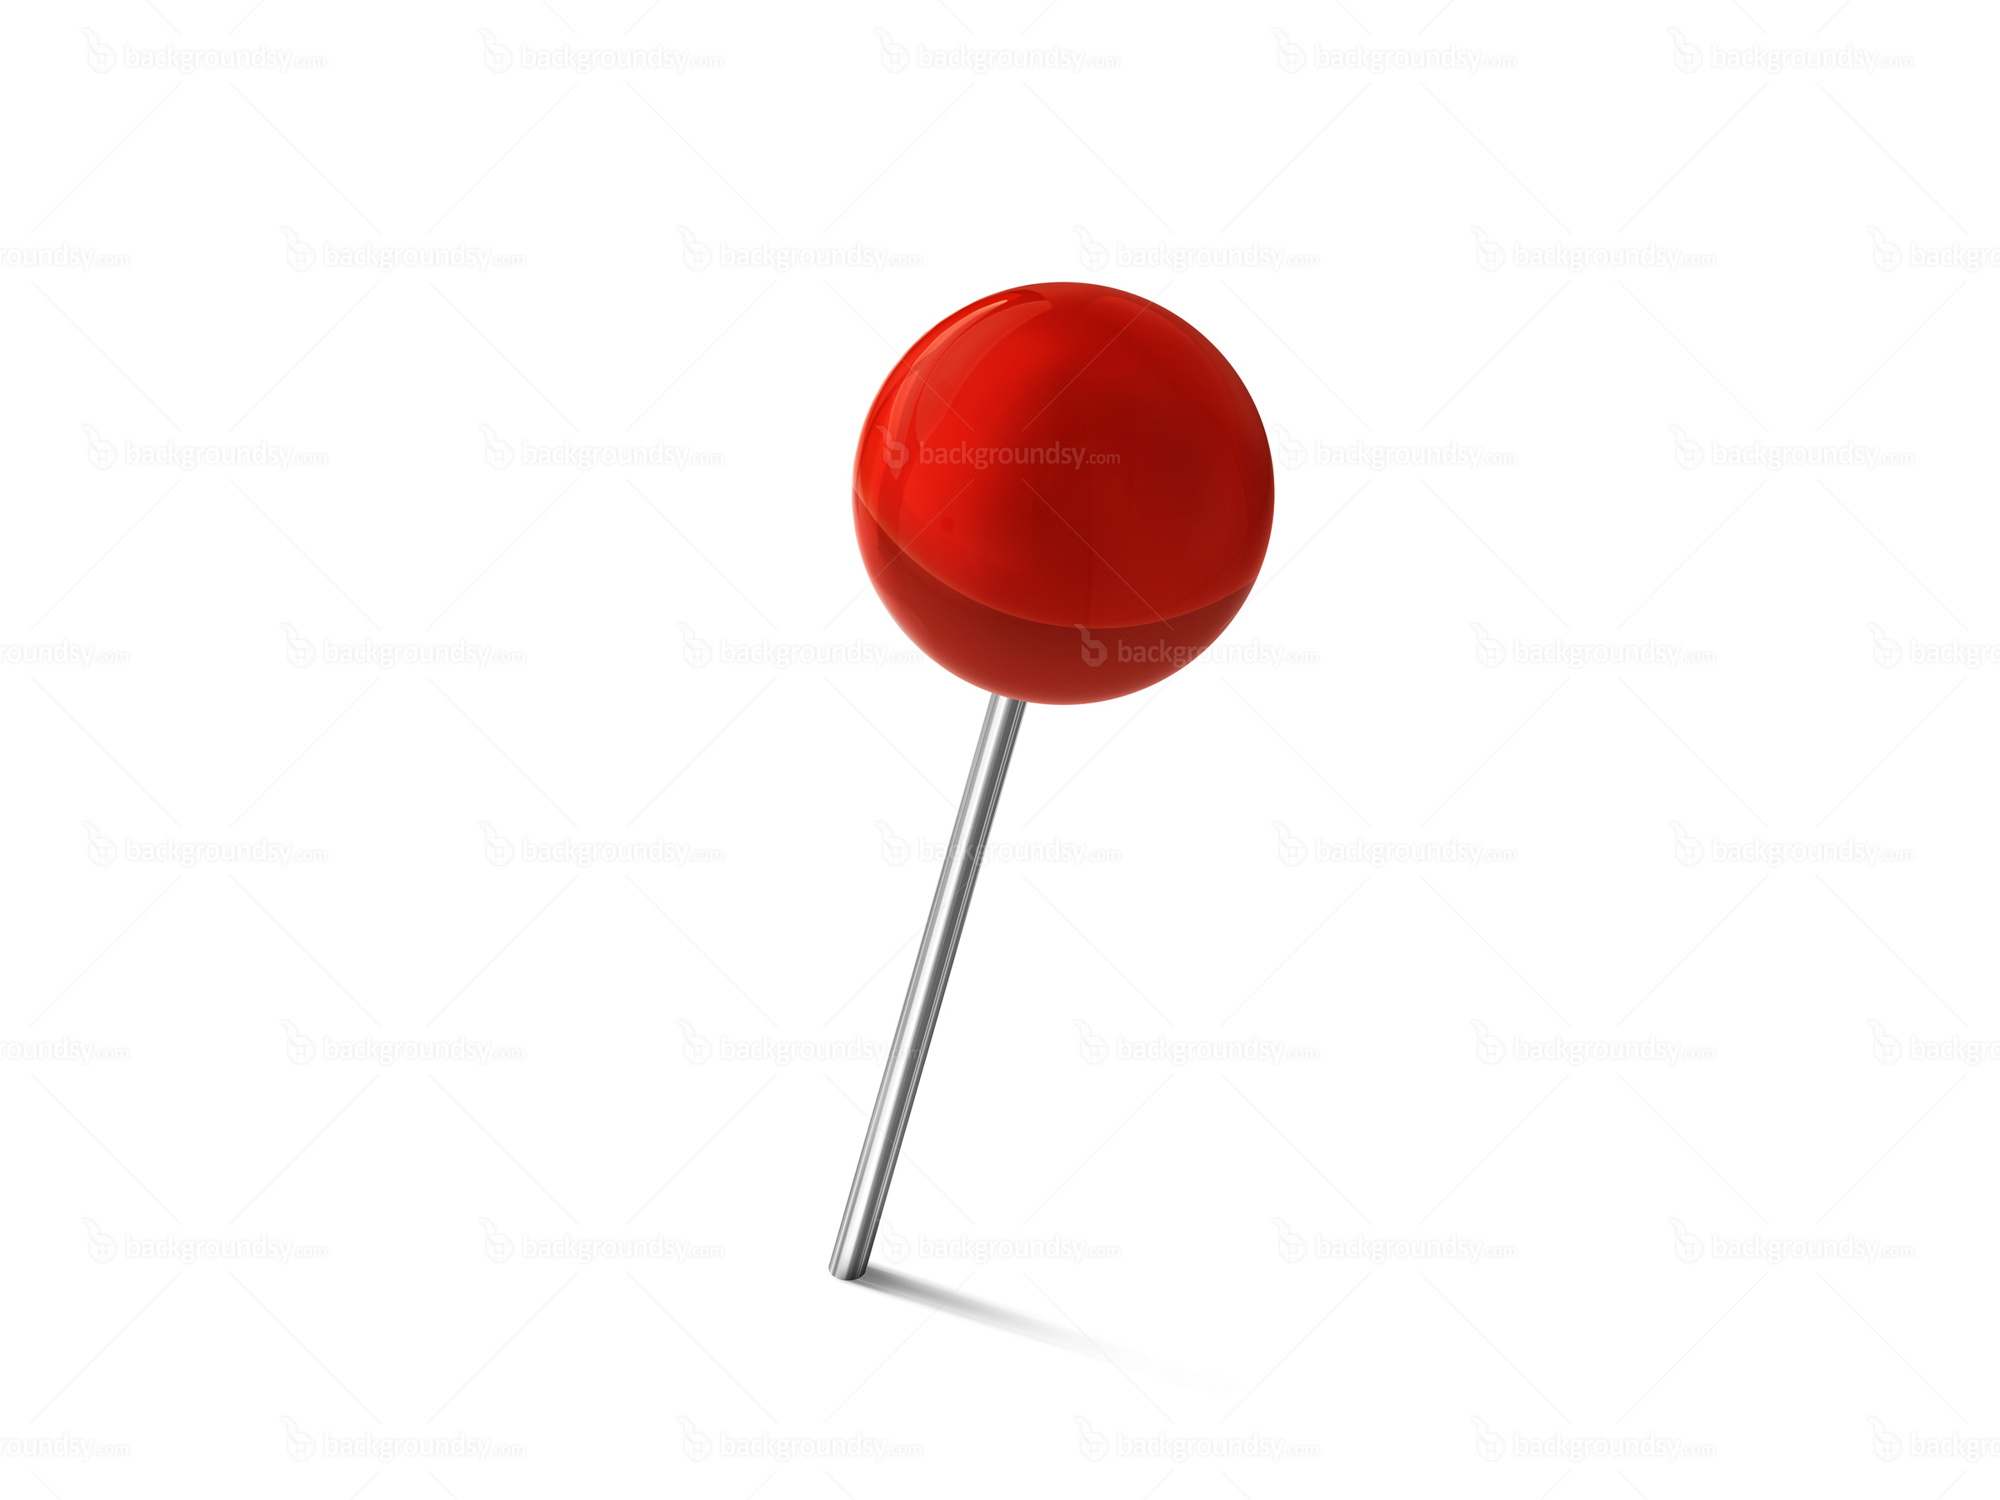 Red Pushpin Backgroundsy Com